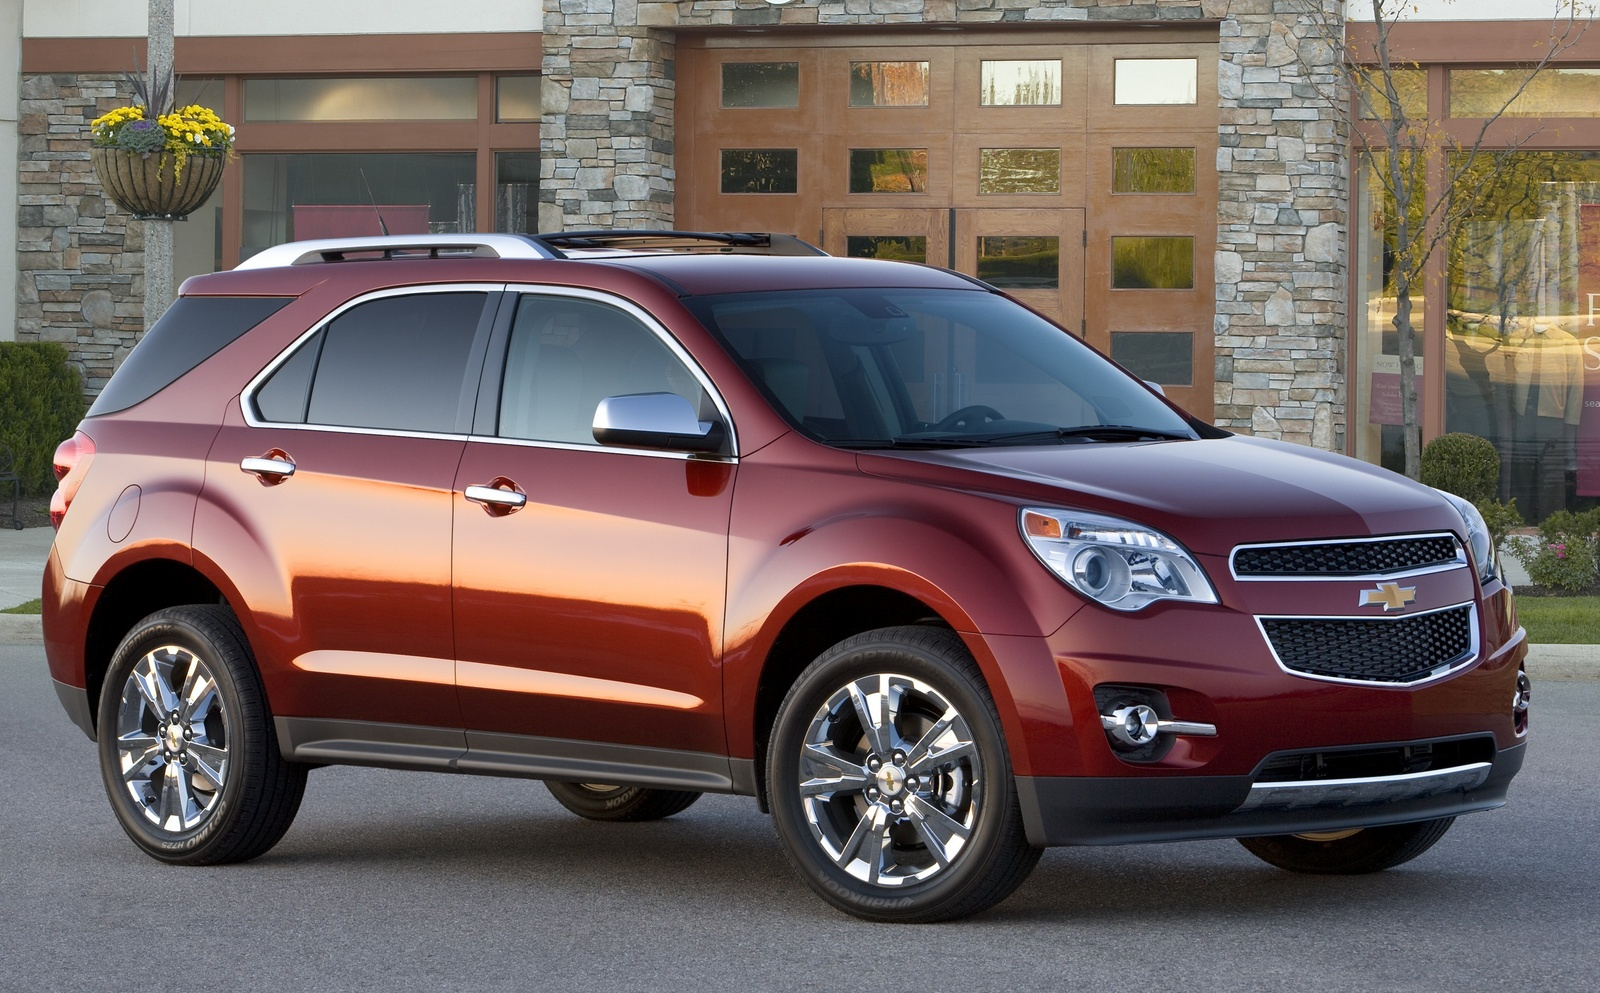 2011 chevrolet equinox overview cargurus